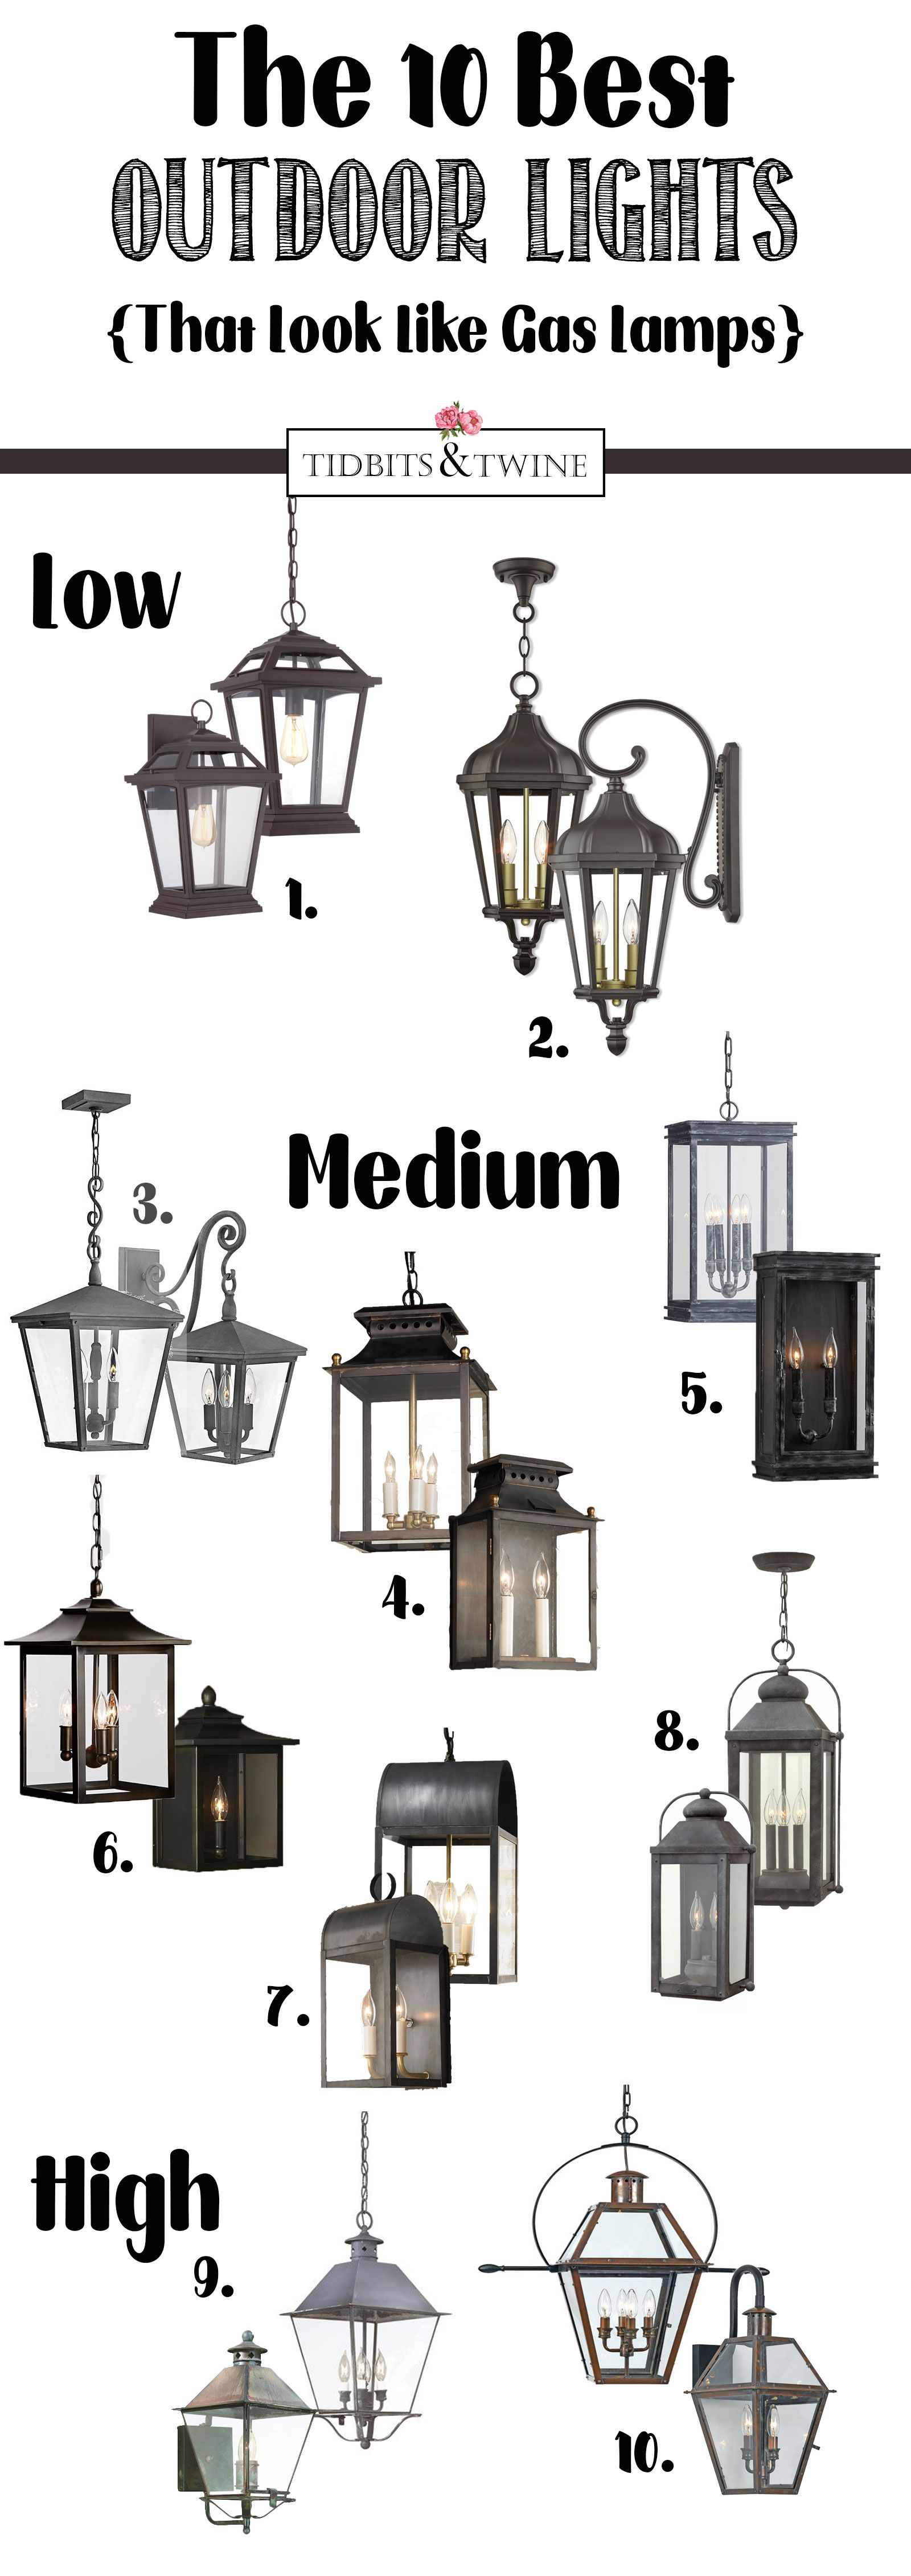 The Best Outdoor Hanging Lantern Sconce Sets Tidbits Twine Outdoor Hanging Lanterns Outdoor Lanterns Outdoor Lighting